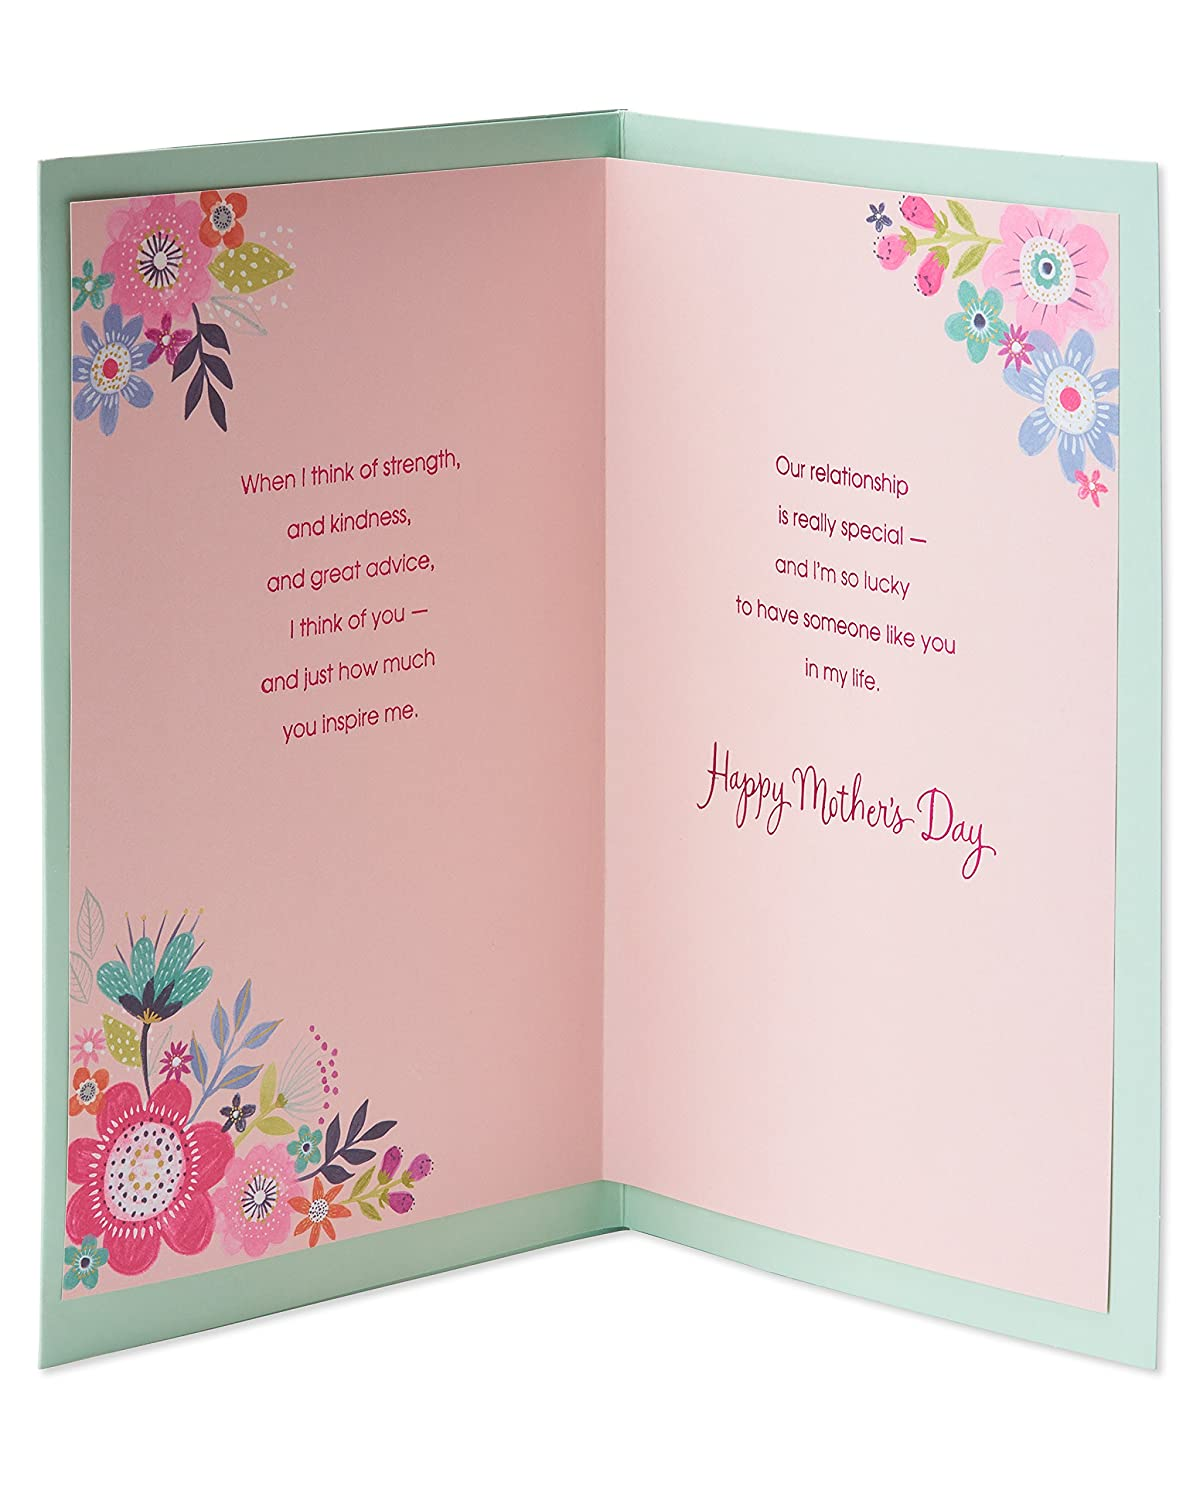 American Greetings Puppies Mothers Day Card with Ribbon